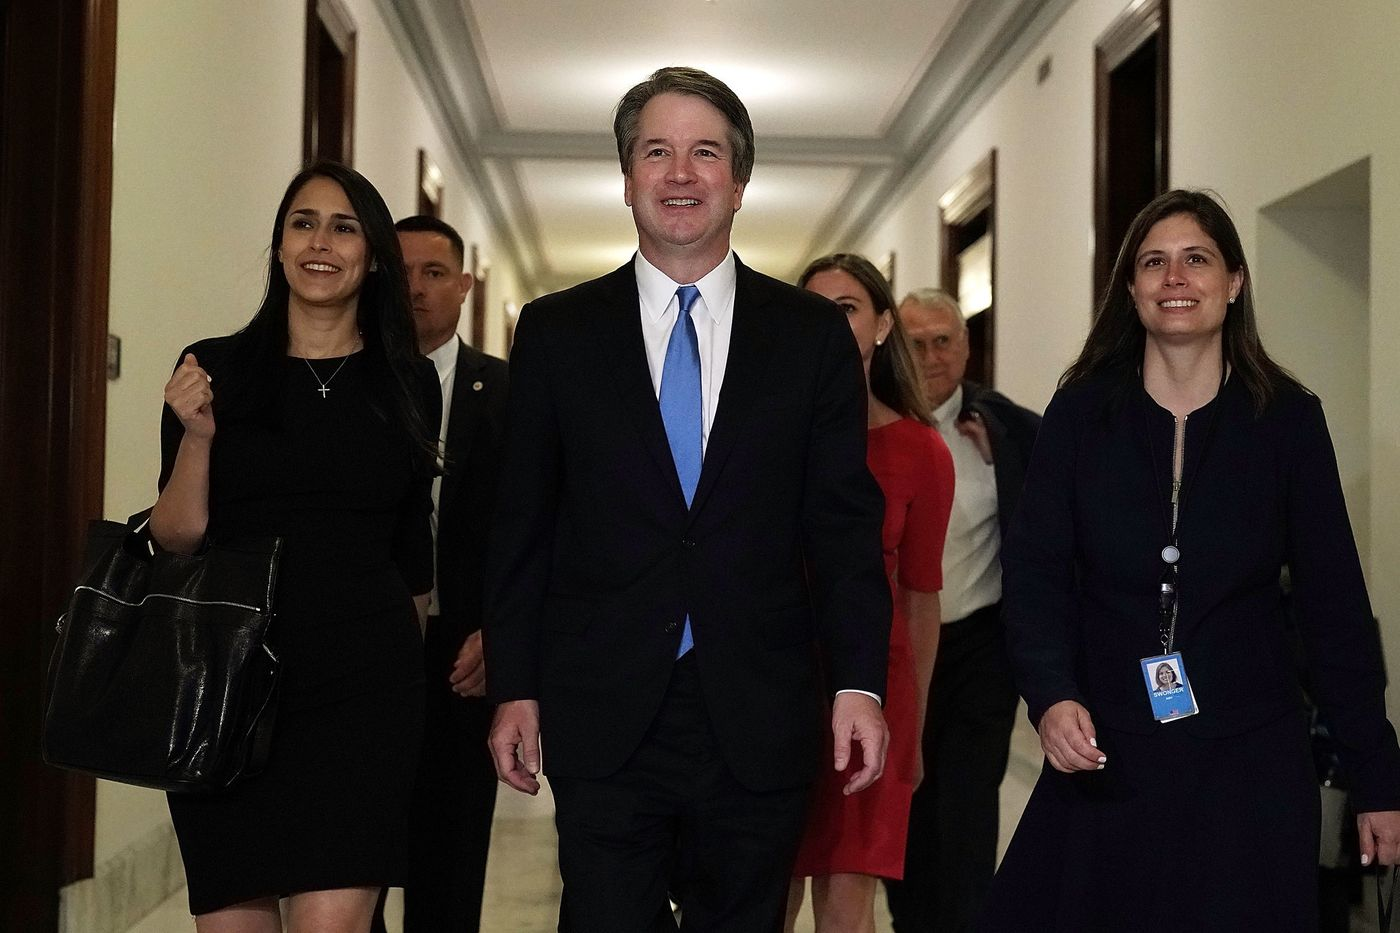 Brett Kavanaugh has a record low of support among Americans: poll https://t.co/78MlgKsC7H https://t.co/MJ2FAYUGah